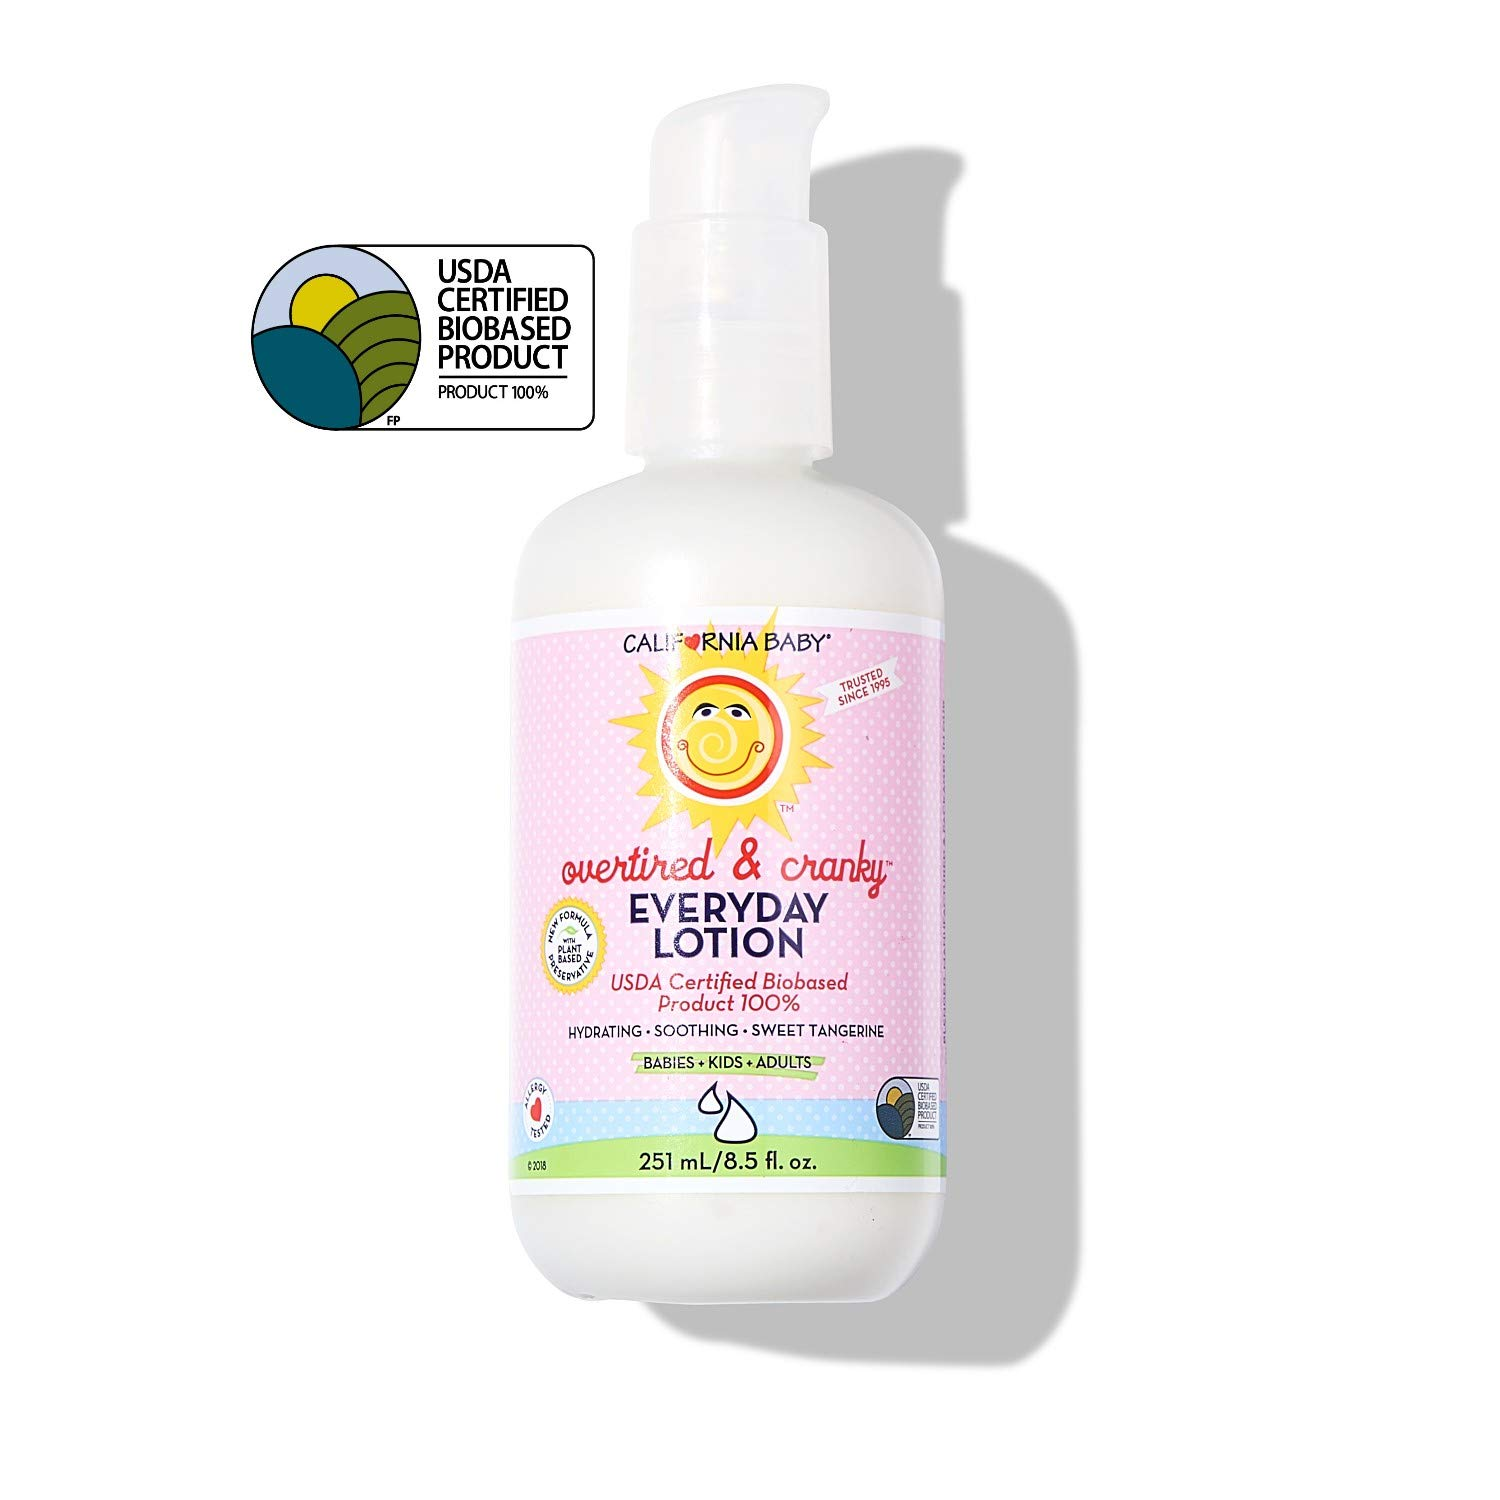 California Baby Overtired and Cranky Everyday Lotion (6.5 oz.) Moisturizer for Dry, Sensitive Skin | Post Bath and Diaper Changing | Non-Greasy, Fast-Absorbing Formula